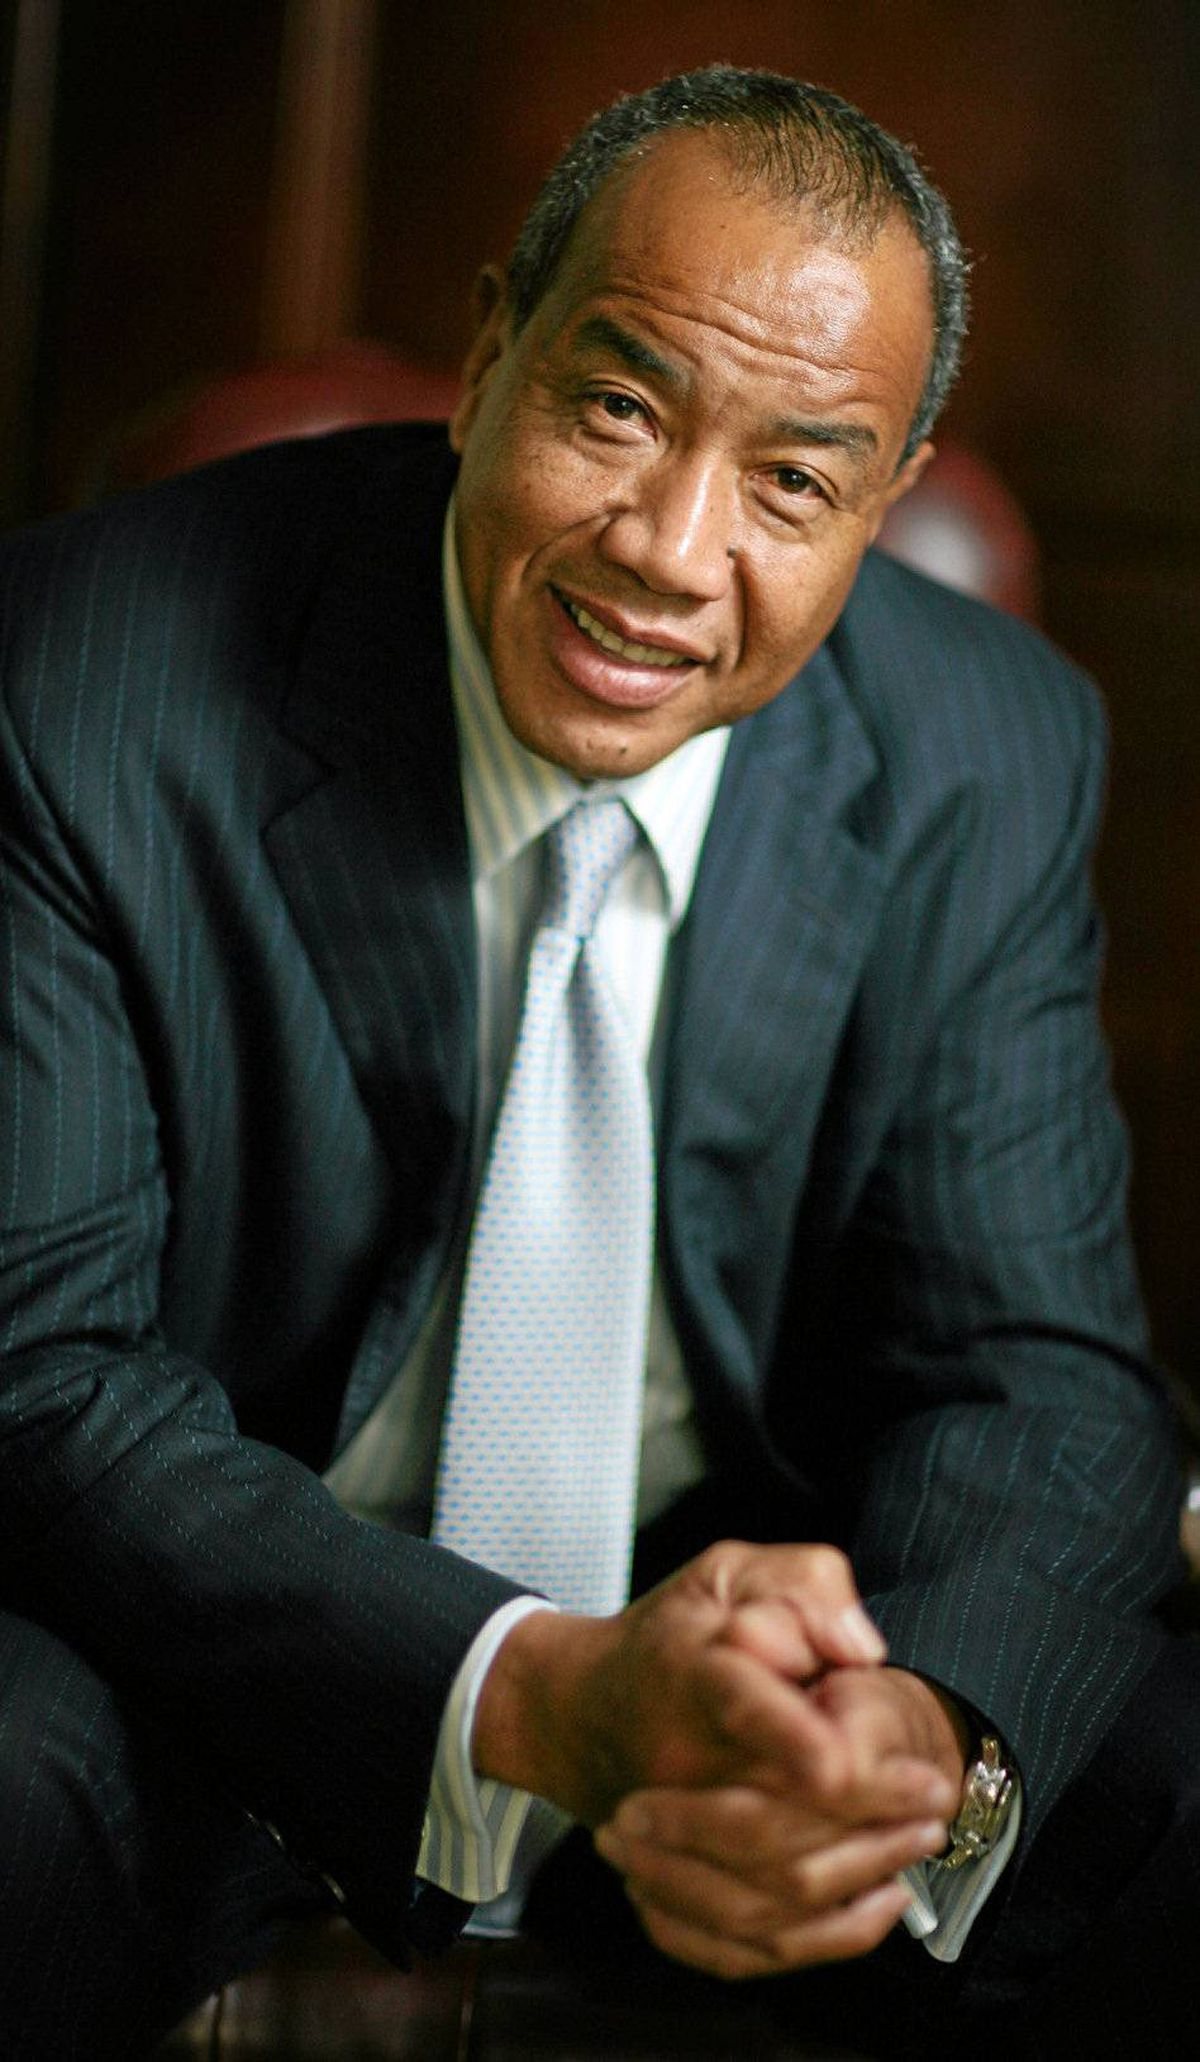 "<h2>Michael Lee-Chin</h2> Day job: Chairman and CEO of Portland Investment Counsel and Chairman of Portland Holdings Inc., and National Commercial Bank of Jamaica. Born: Port Antonio, Jamaica How old were you when you moved to Canada? 19 First job in Canada? Bouncer Net worth? $1-billion Signs of promise? Short on tuition, wrote to the Jamaican prime minister and asked him to ""invest in Jamaica's future."" Street cred? Ranked 701 in the latest Forbes Billionaire List. Do you give back? Donated $30-million to the Royal Ontario Museum in 2003, giving it the eponymous crystal."